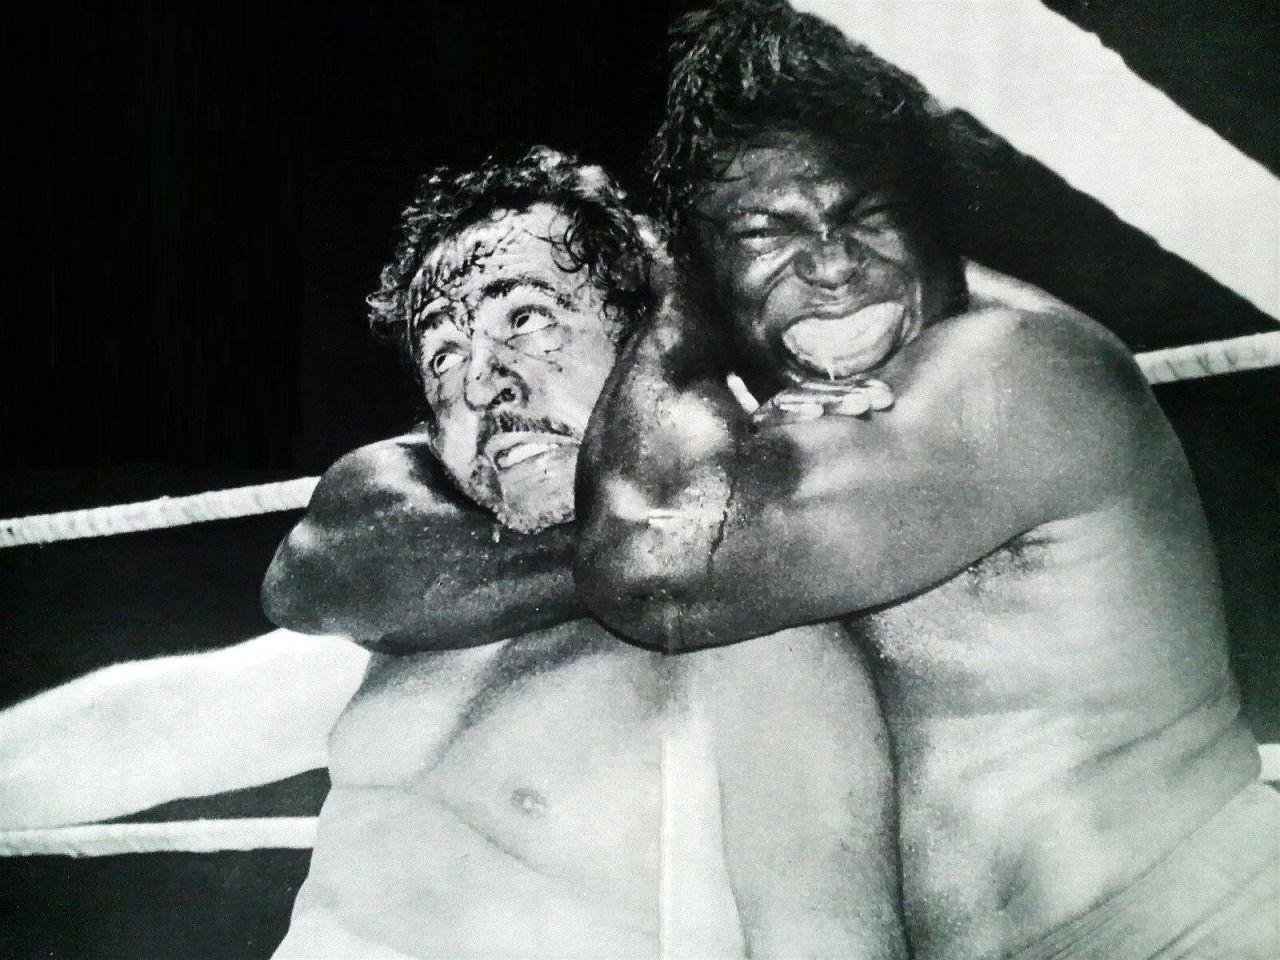 The rivalry between 'The Sheik' Ed Farhat and Bobo Brazil spilled many buckets of blood and thrilled fans for decades.